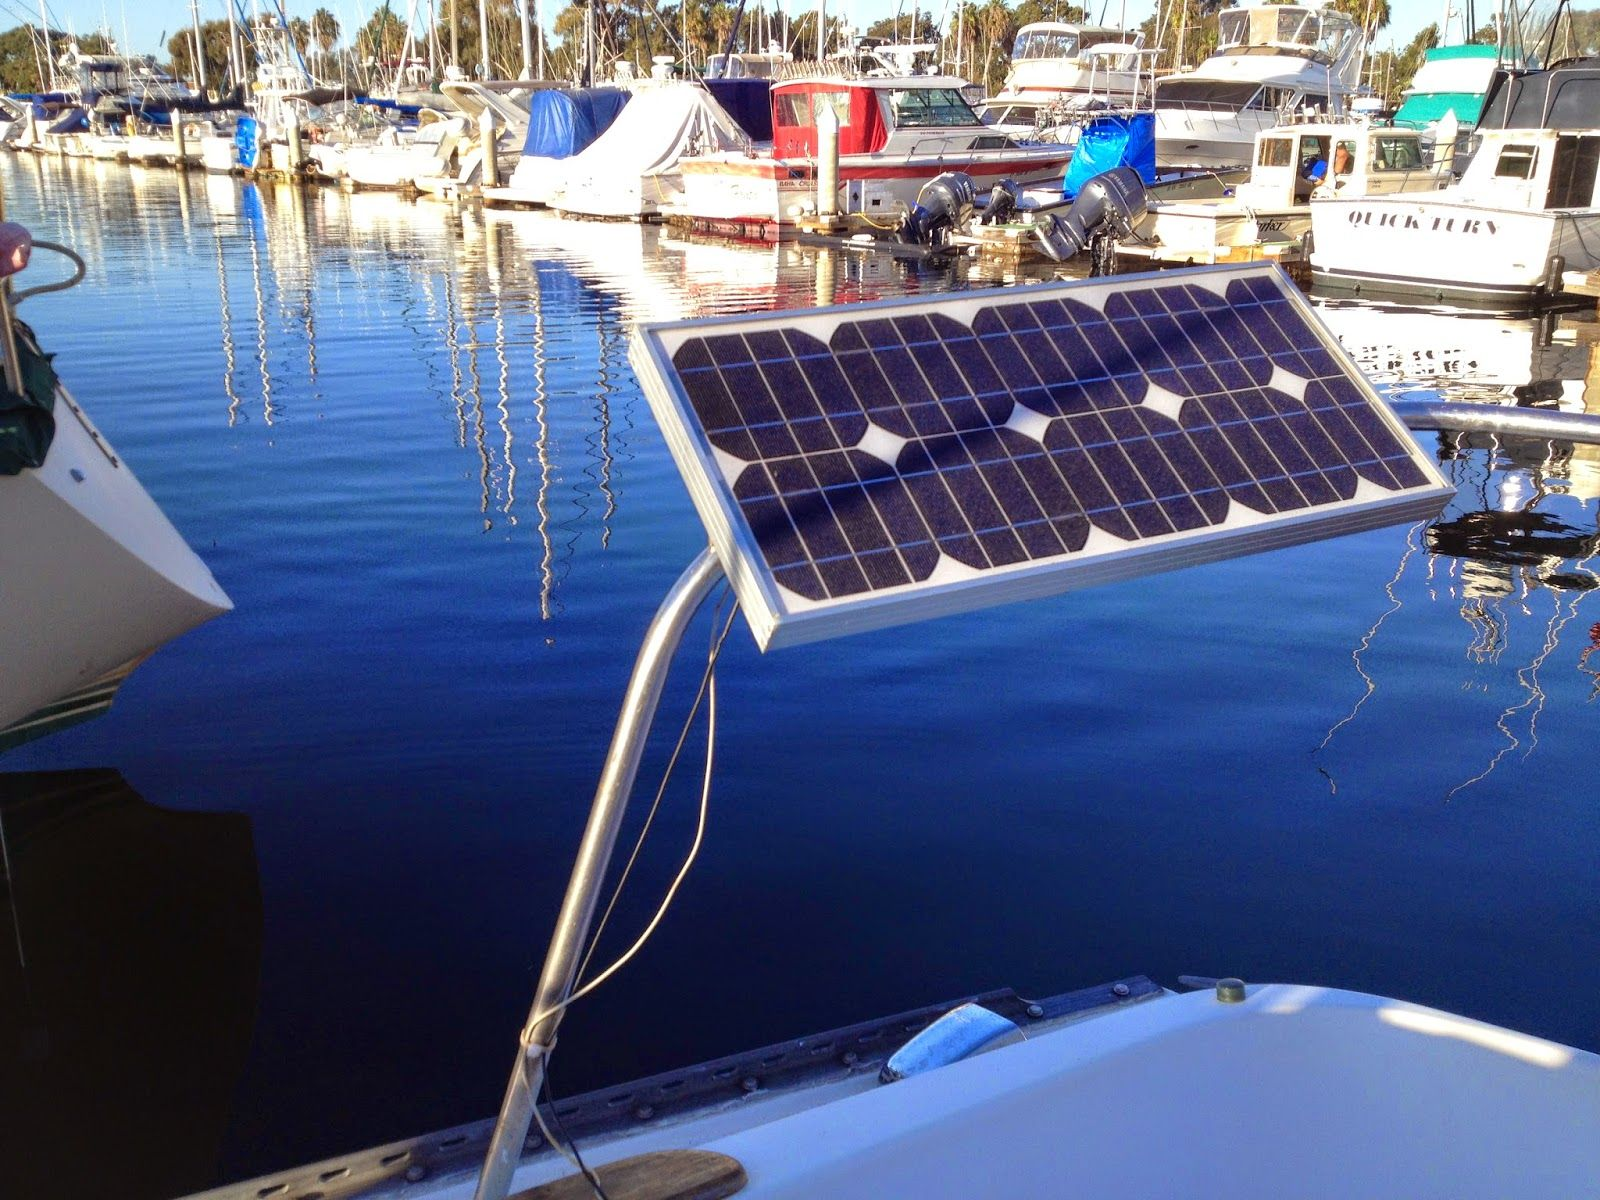 Marine solar panel installations first mate marine inc - How To Install Solar Panels On A Sailboat For Cheap Tap On The Link To See The Newly Released Collections For Amazing Beach Bikinis